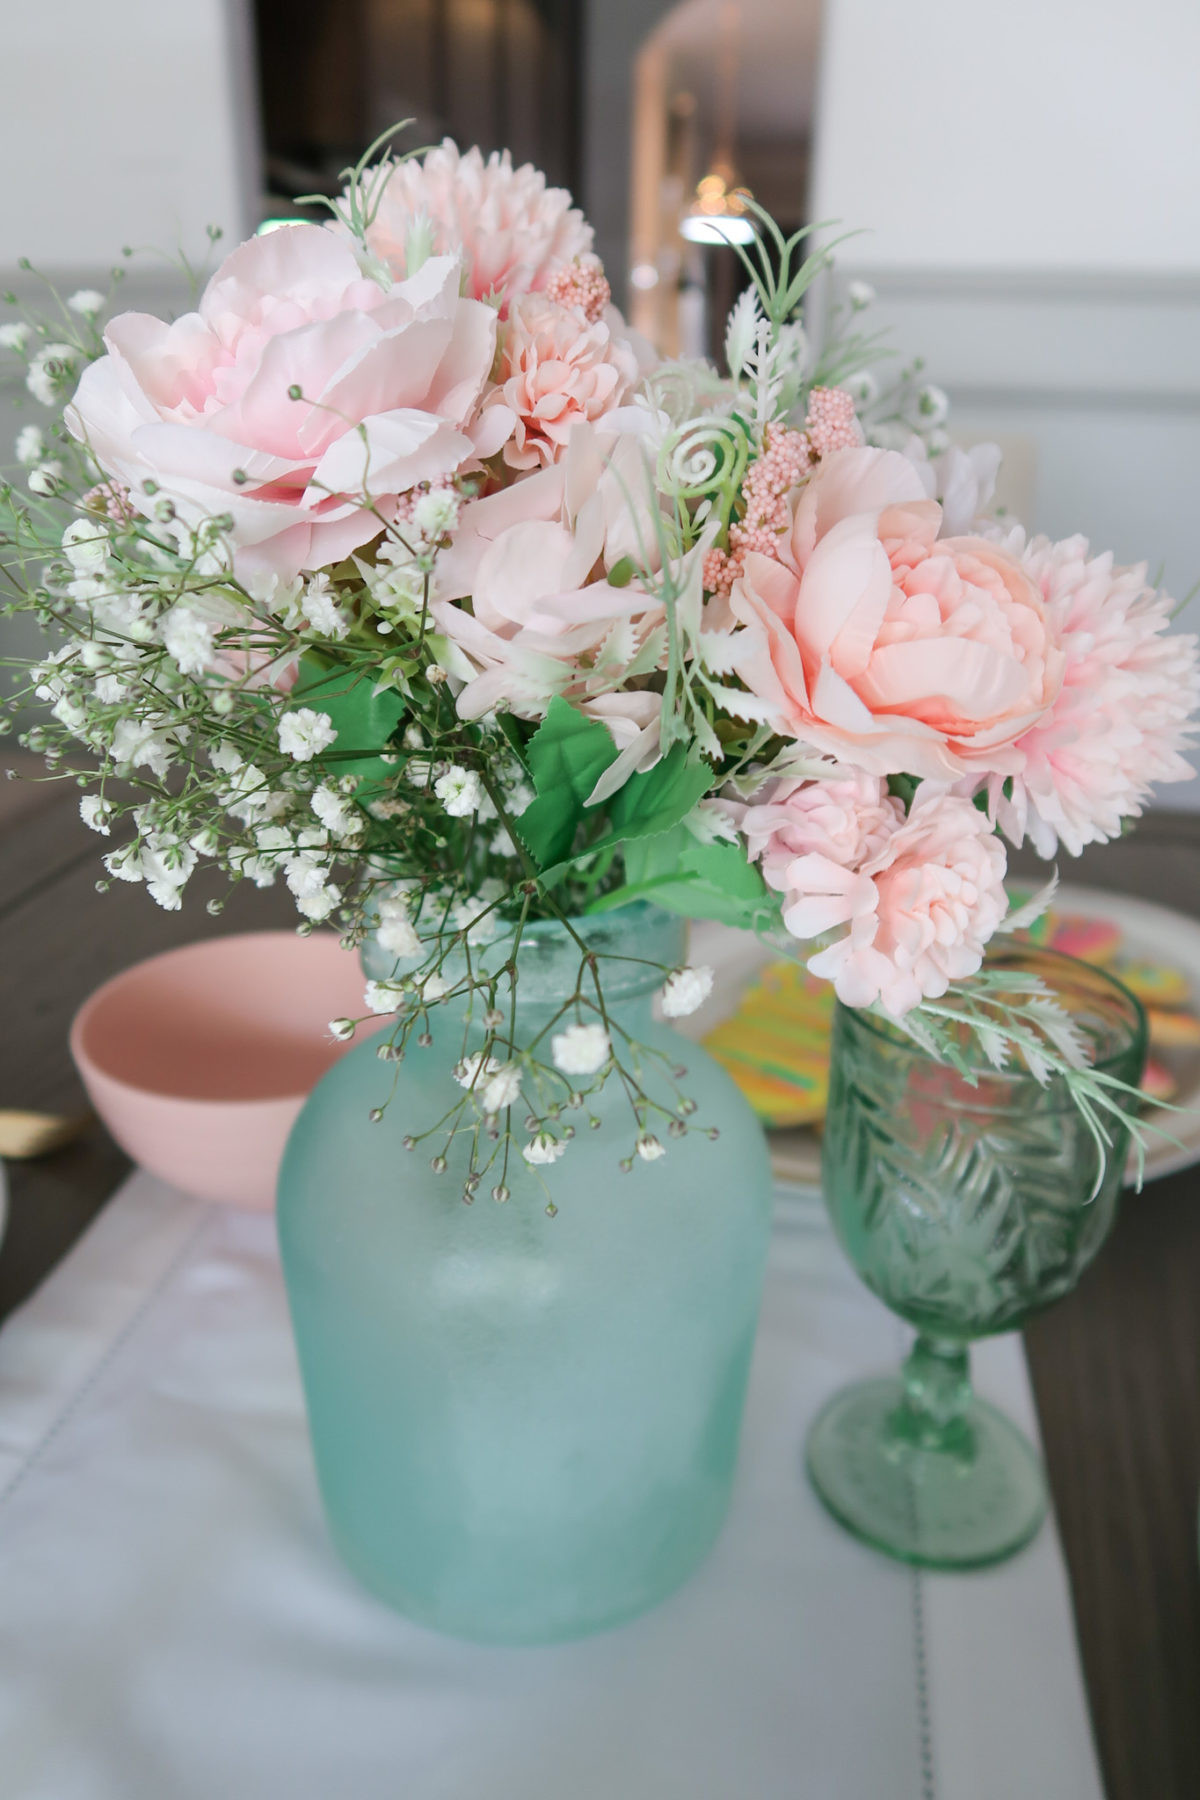 Spring Decor, Faux Flowers, Sea Glass Vase, Green Glasses, White Linens